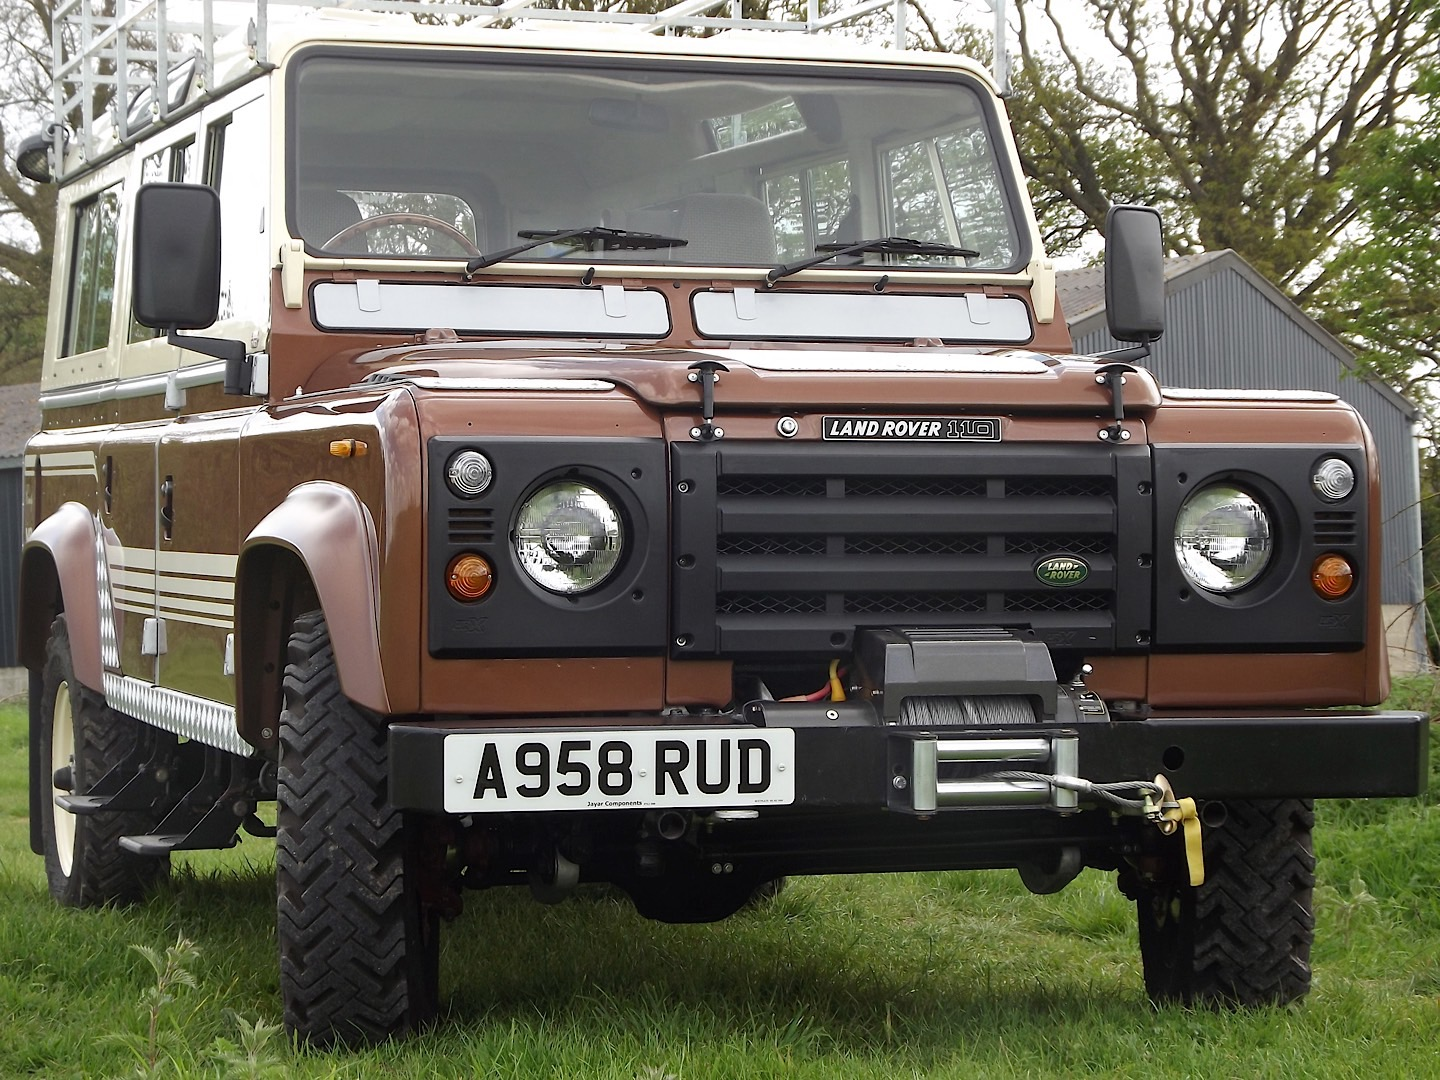 1983 Land Rover 110 County Station Wagon Up For Auction As the ...